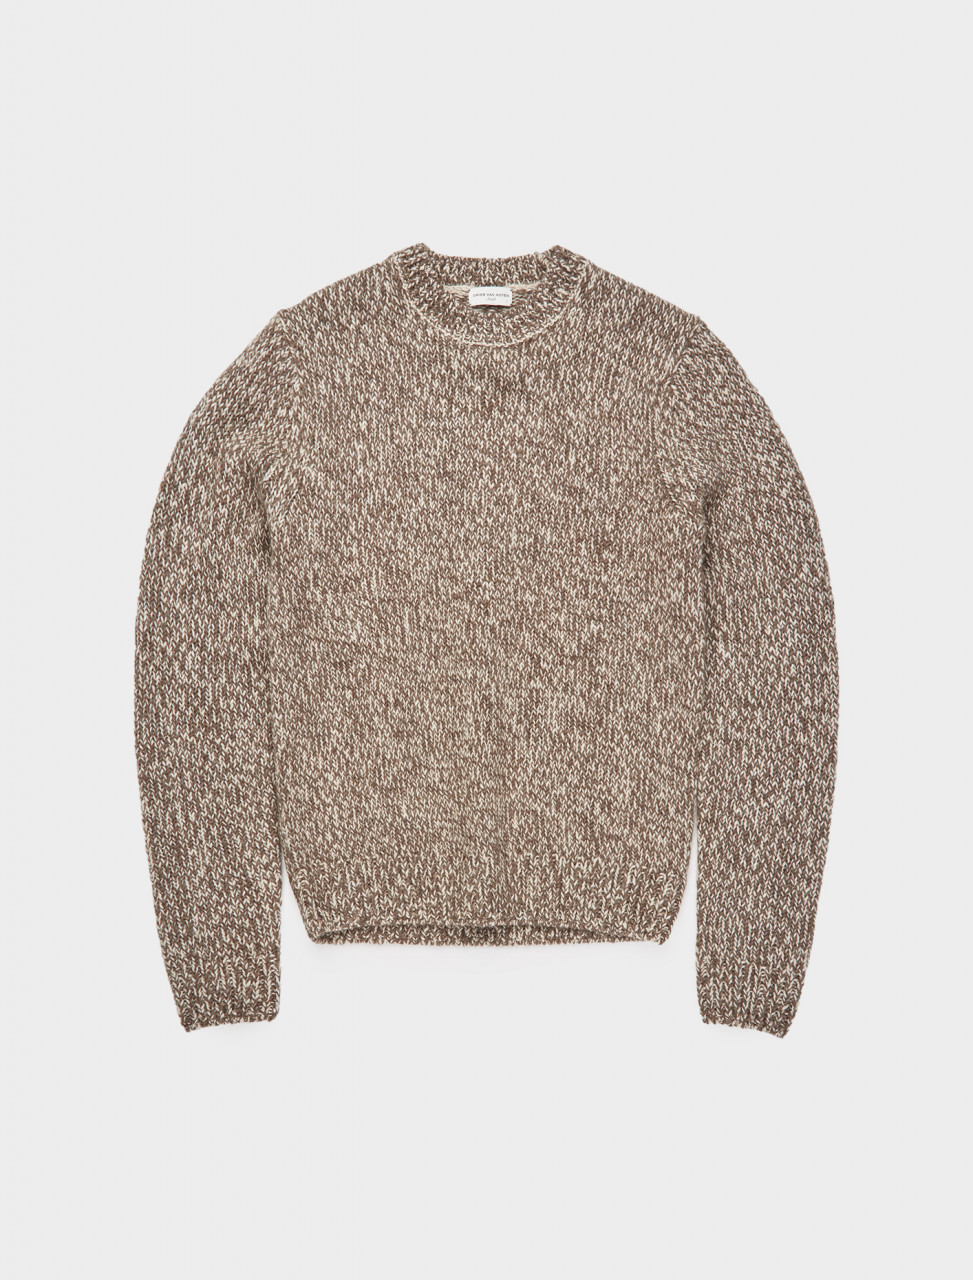 260-202-21206-1706-004 DRIES VAN NOTEN MIJOU CREW NECK KNIT NATURAL MELANGE